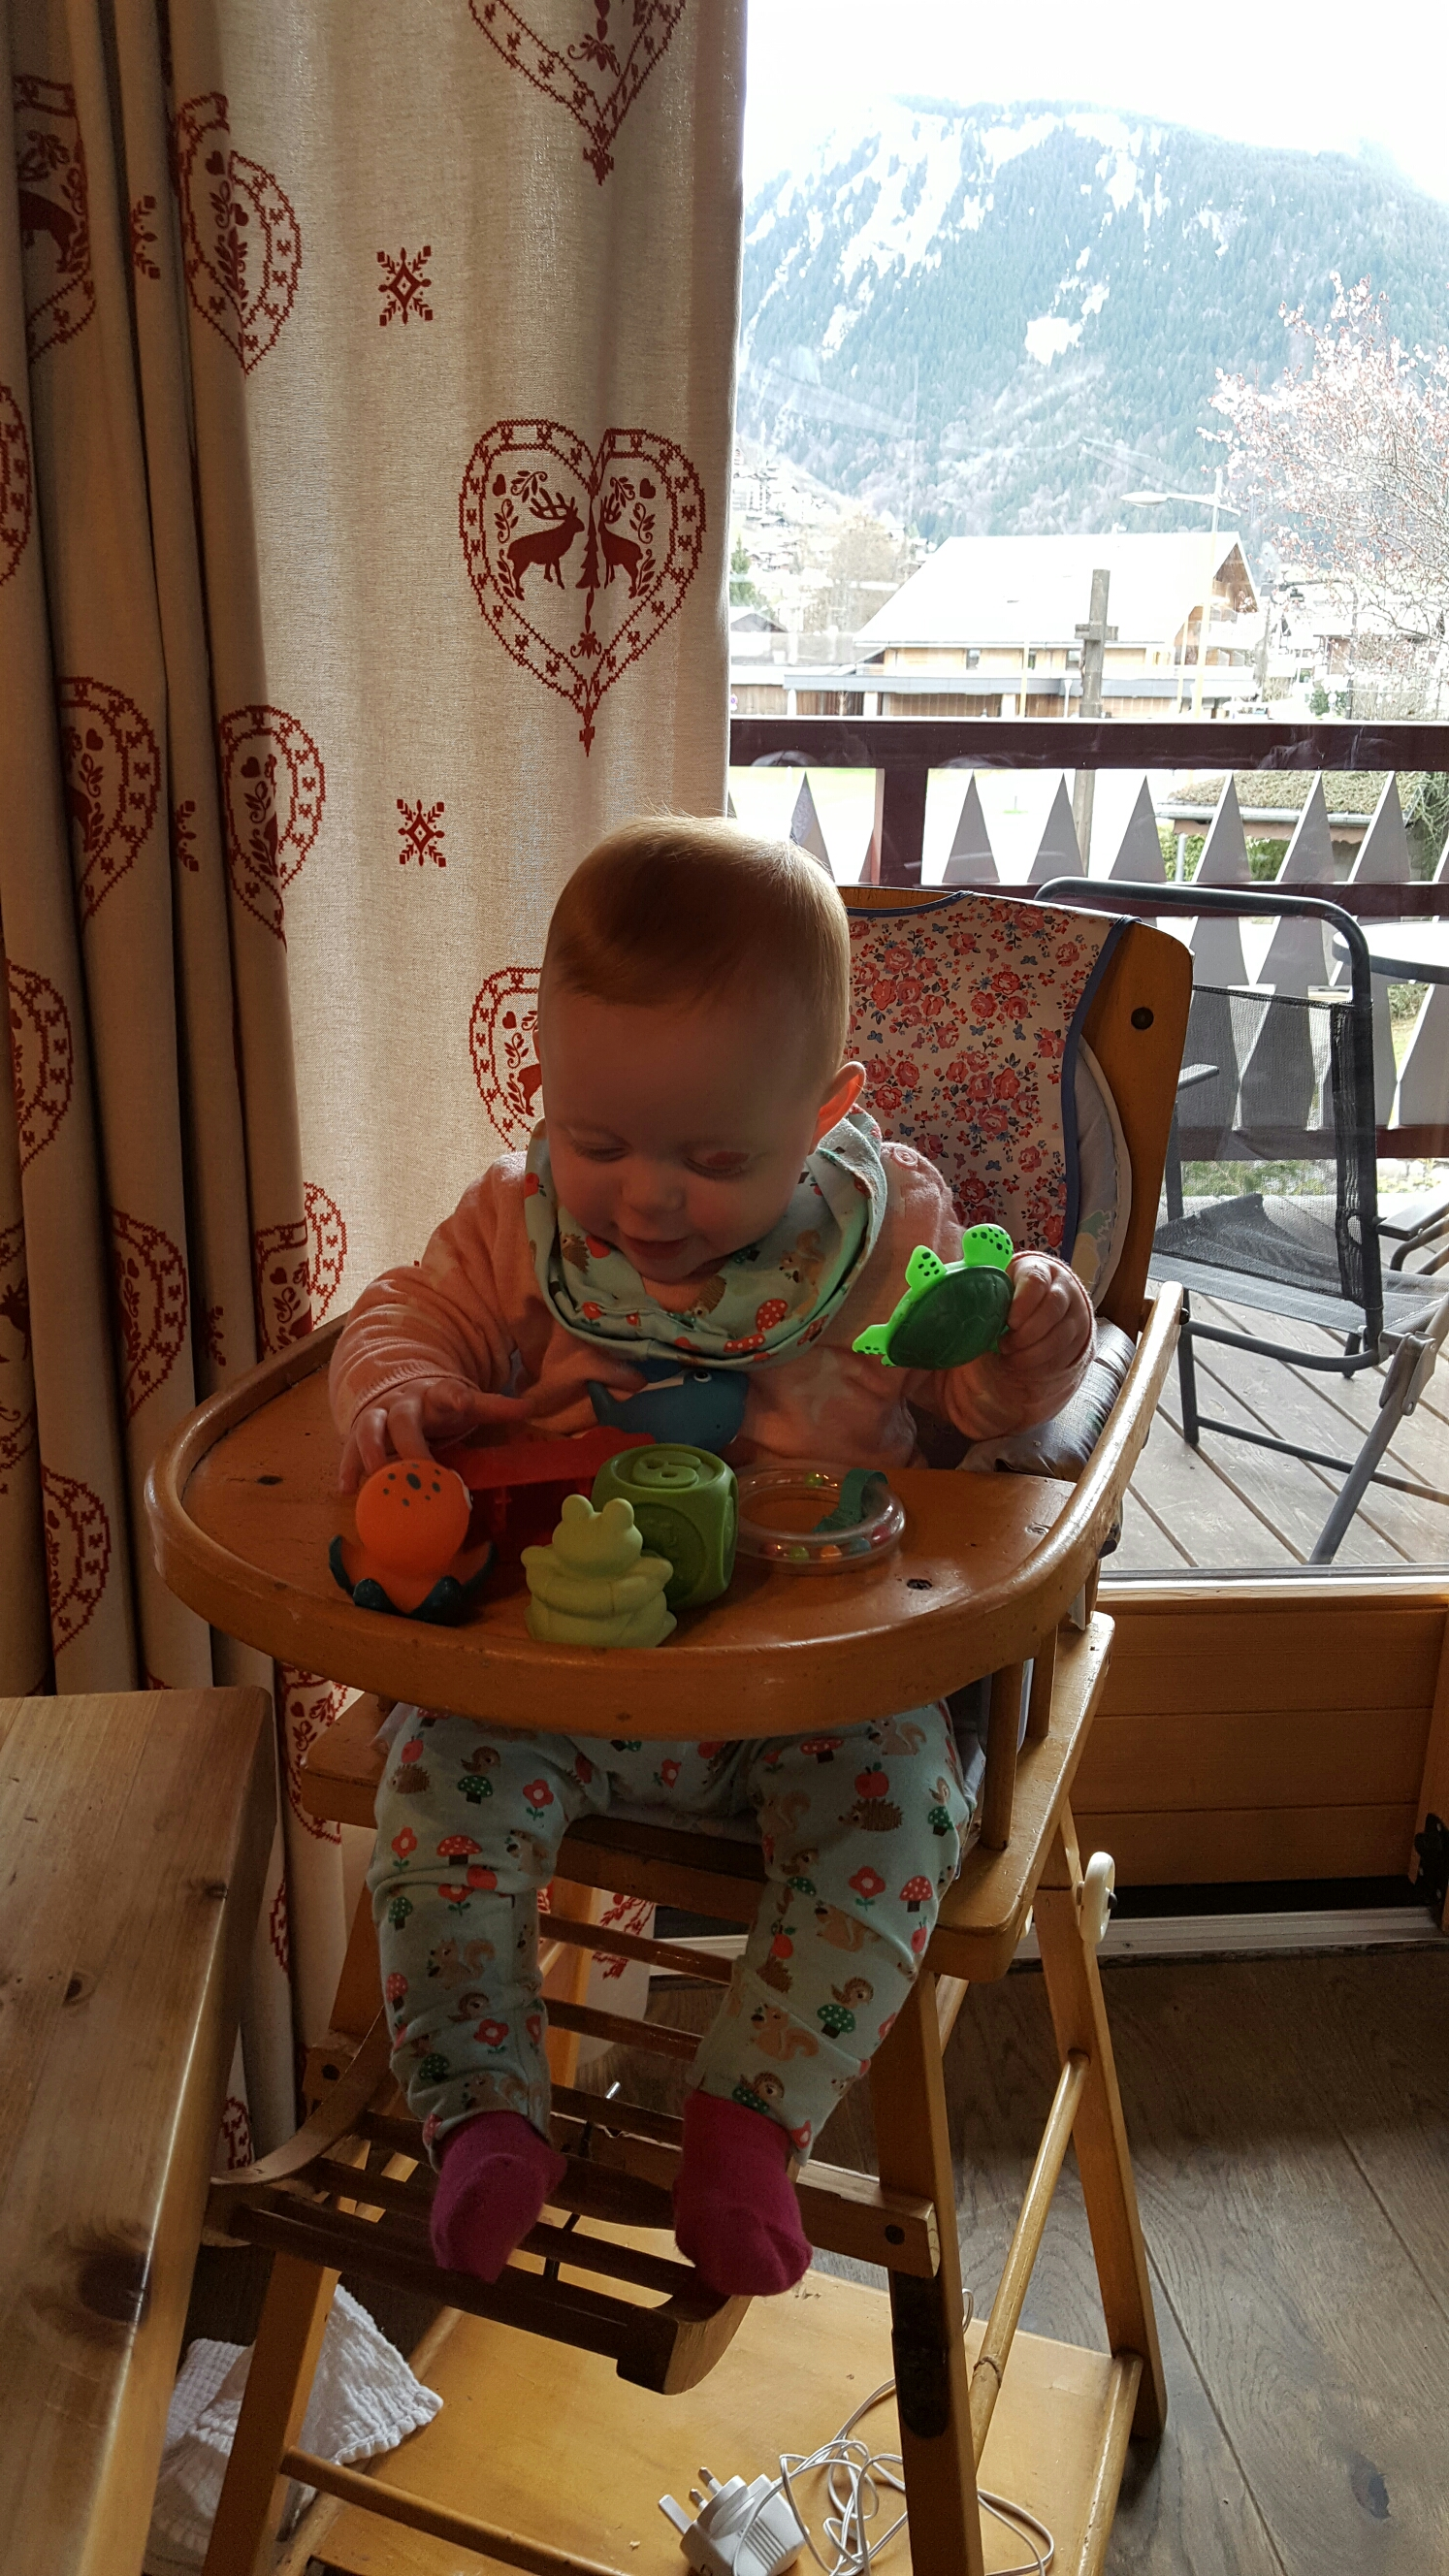 It was so handy to have a highchair waiting for us